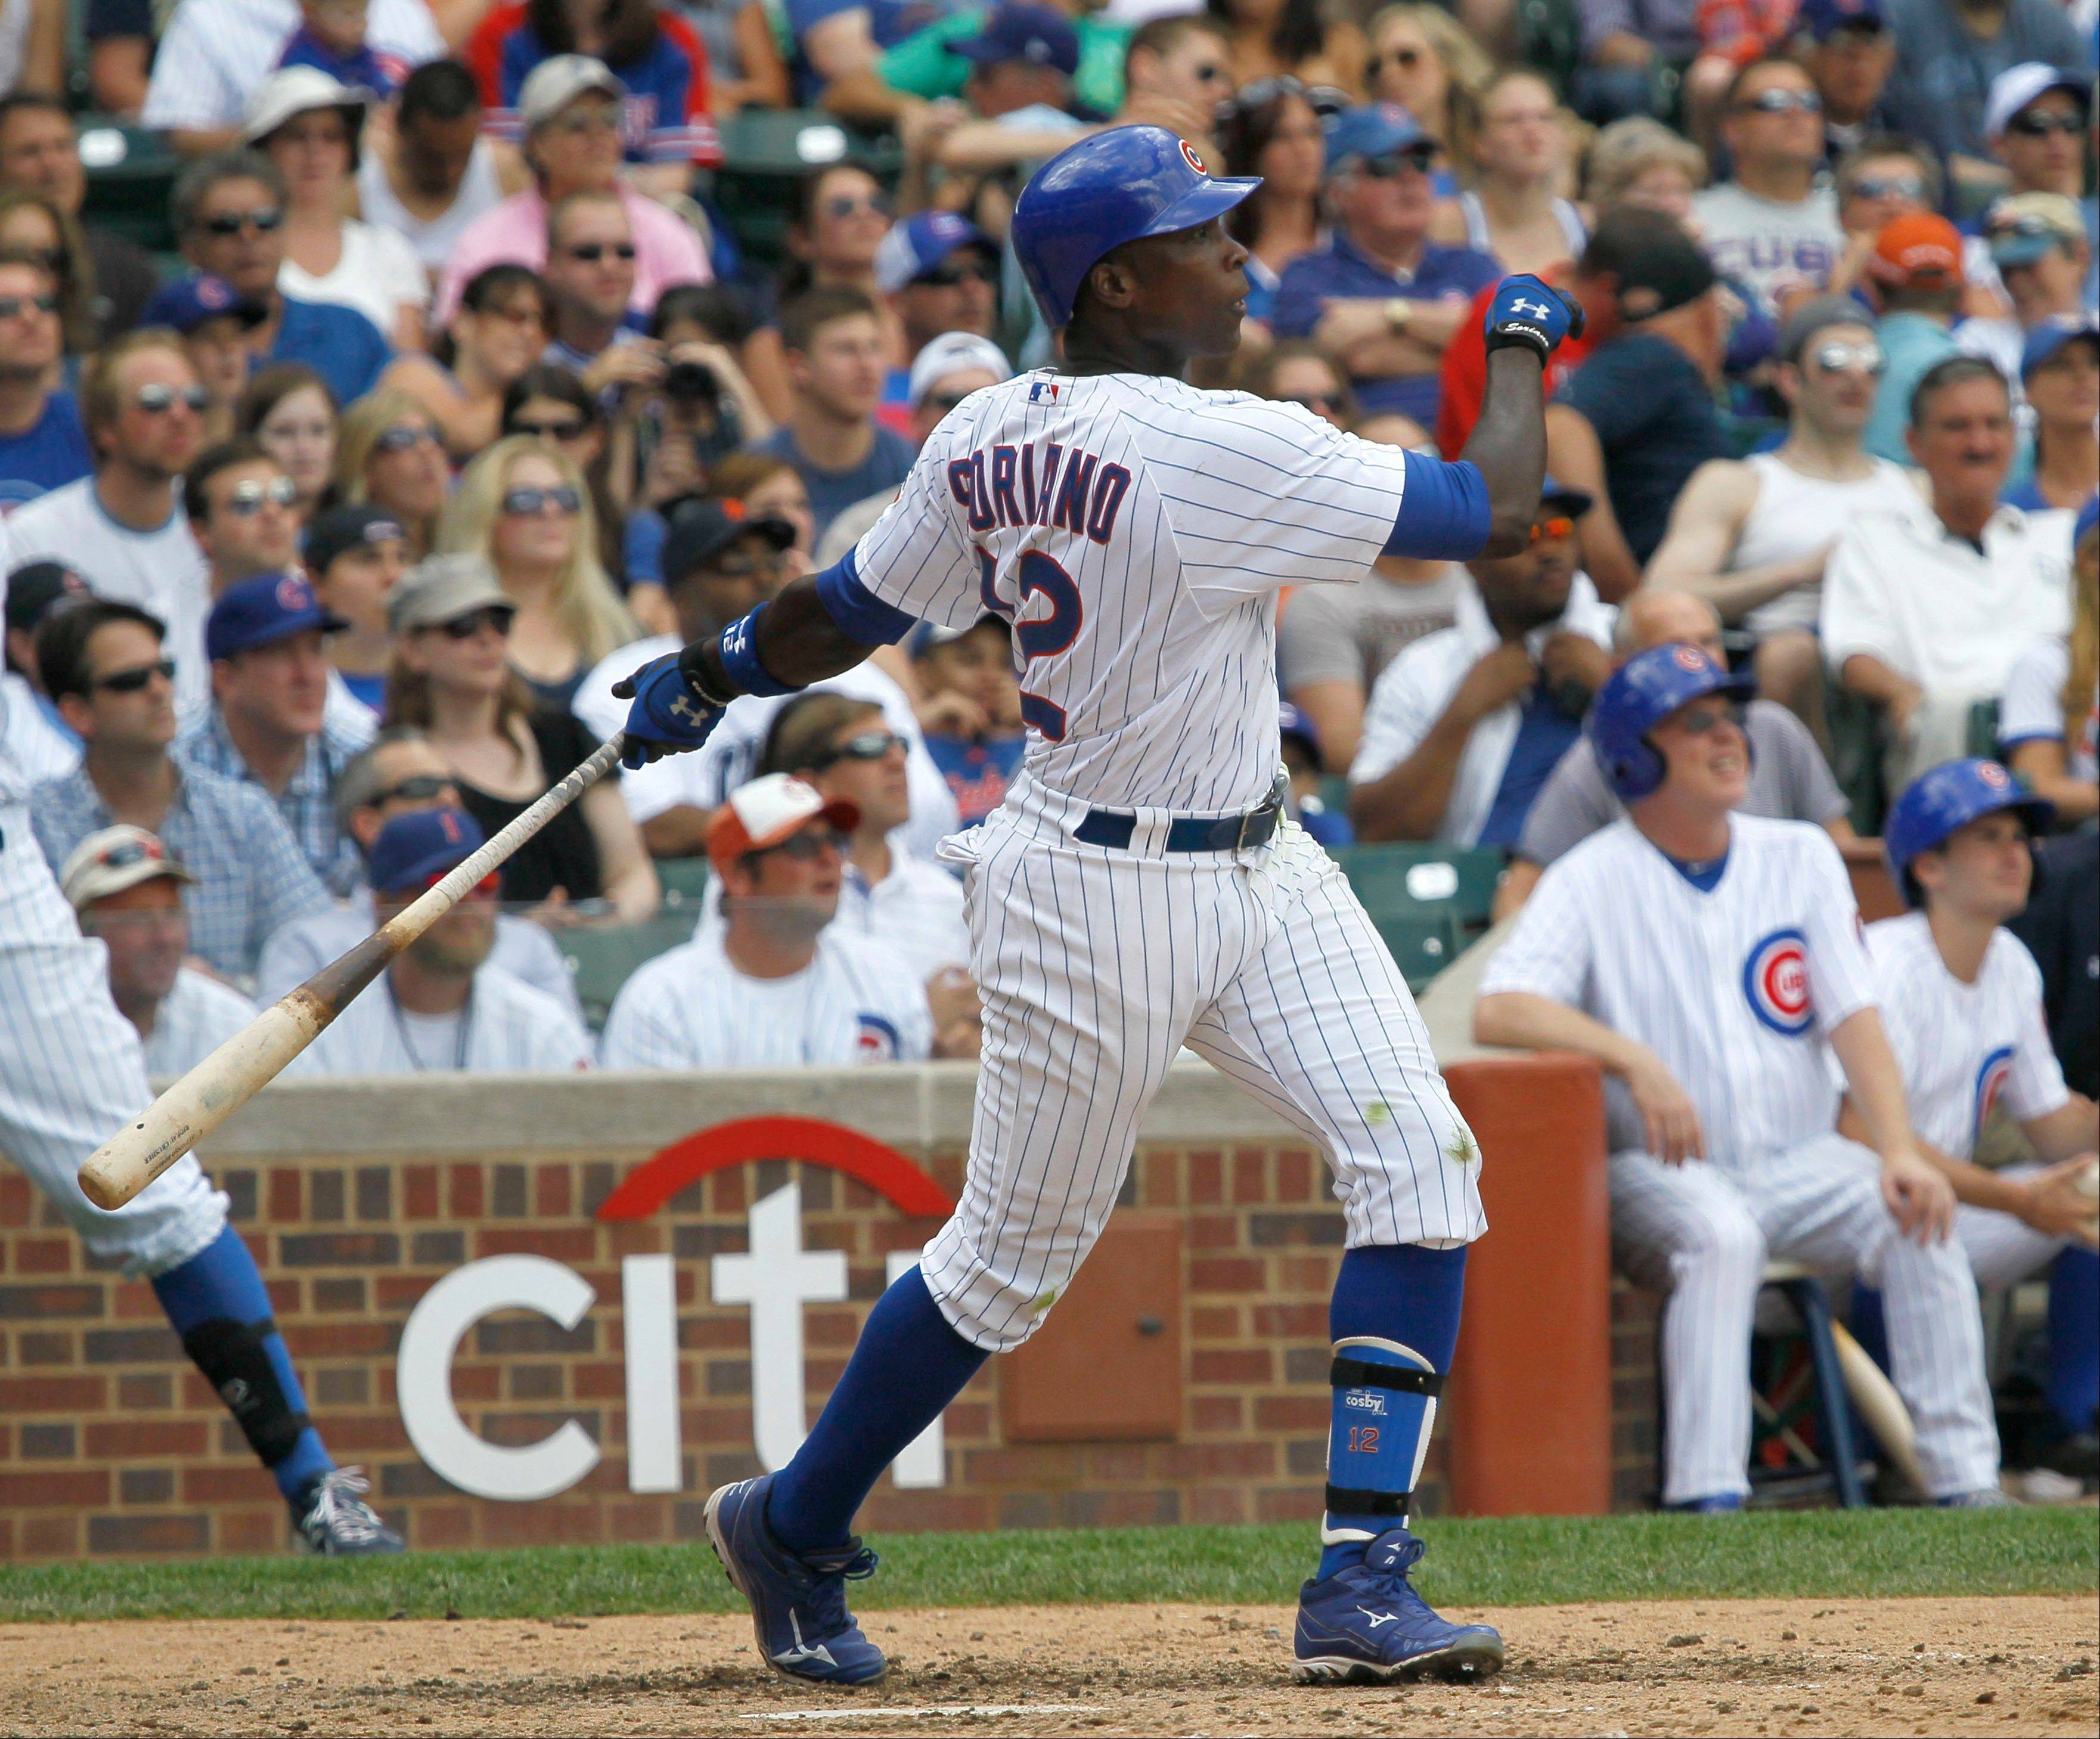 The Cubs' Alfonso Soriano hits a home run in the sixth inning of Tuesday's victory over the Padres.